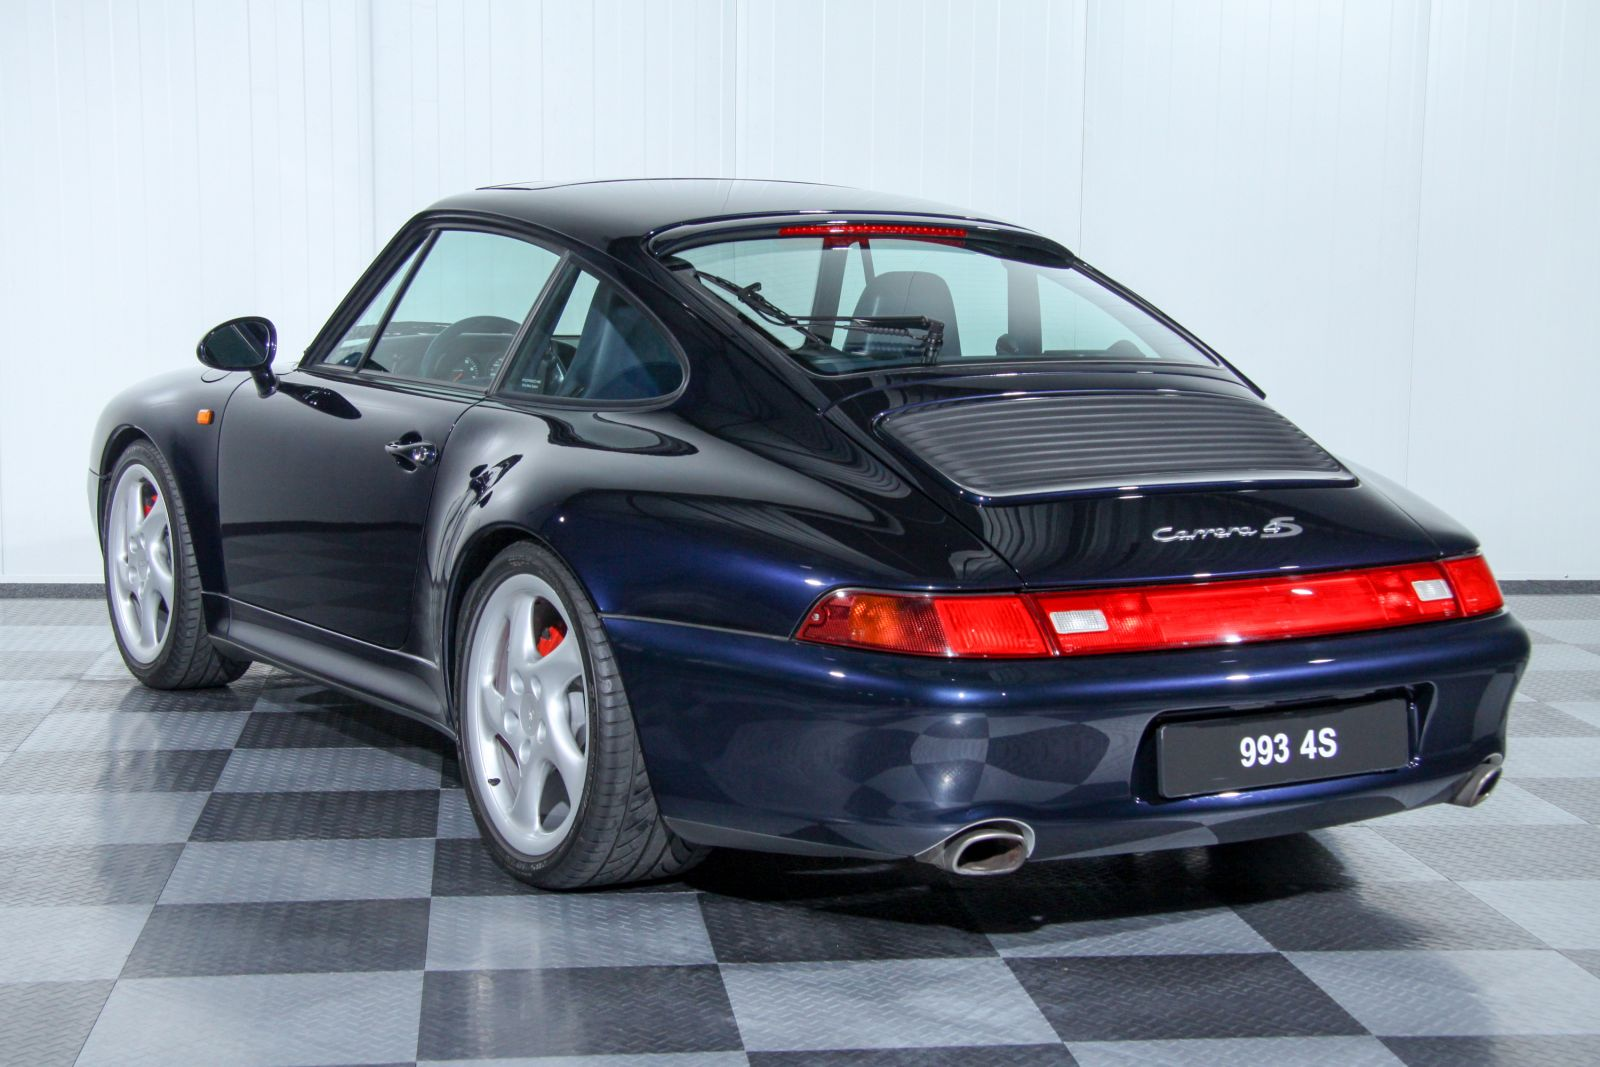 dream garage collectionporsche porsche 911 993 carrera 4s coupe. Black Bedroom Furniture Sets. Home Design Ideas